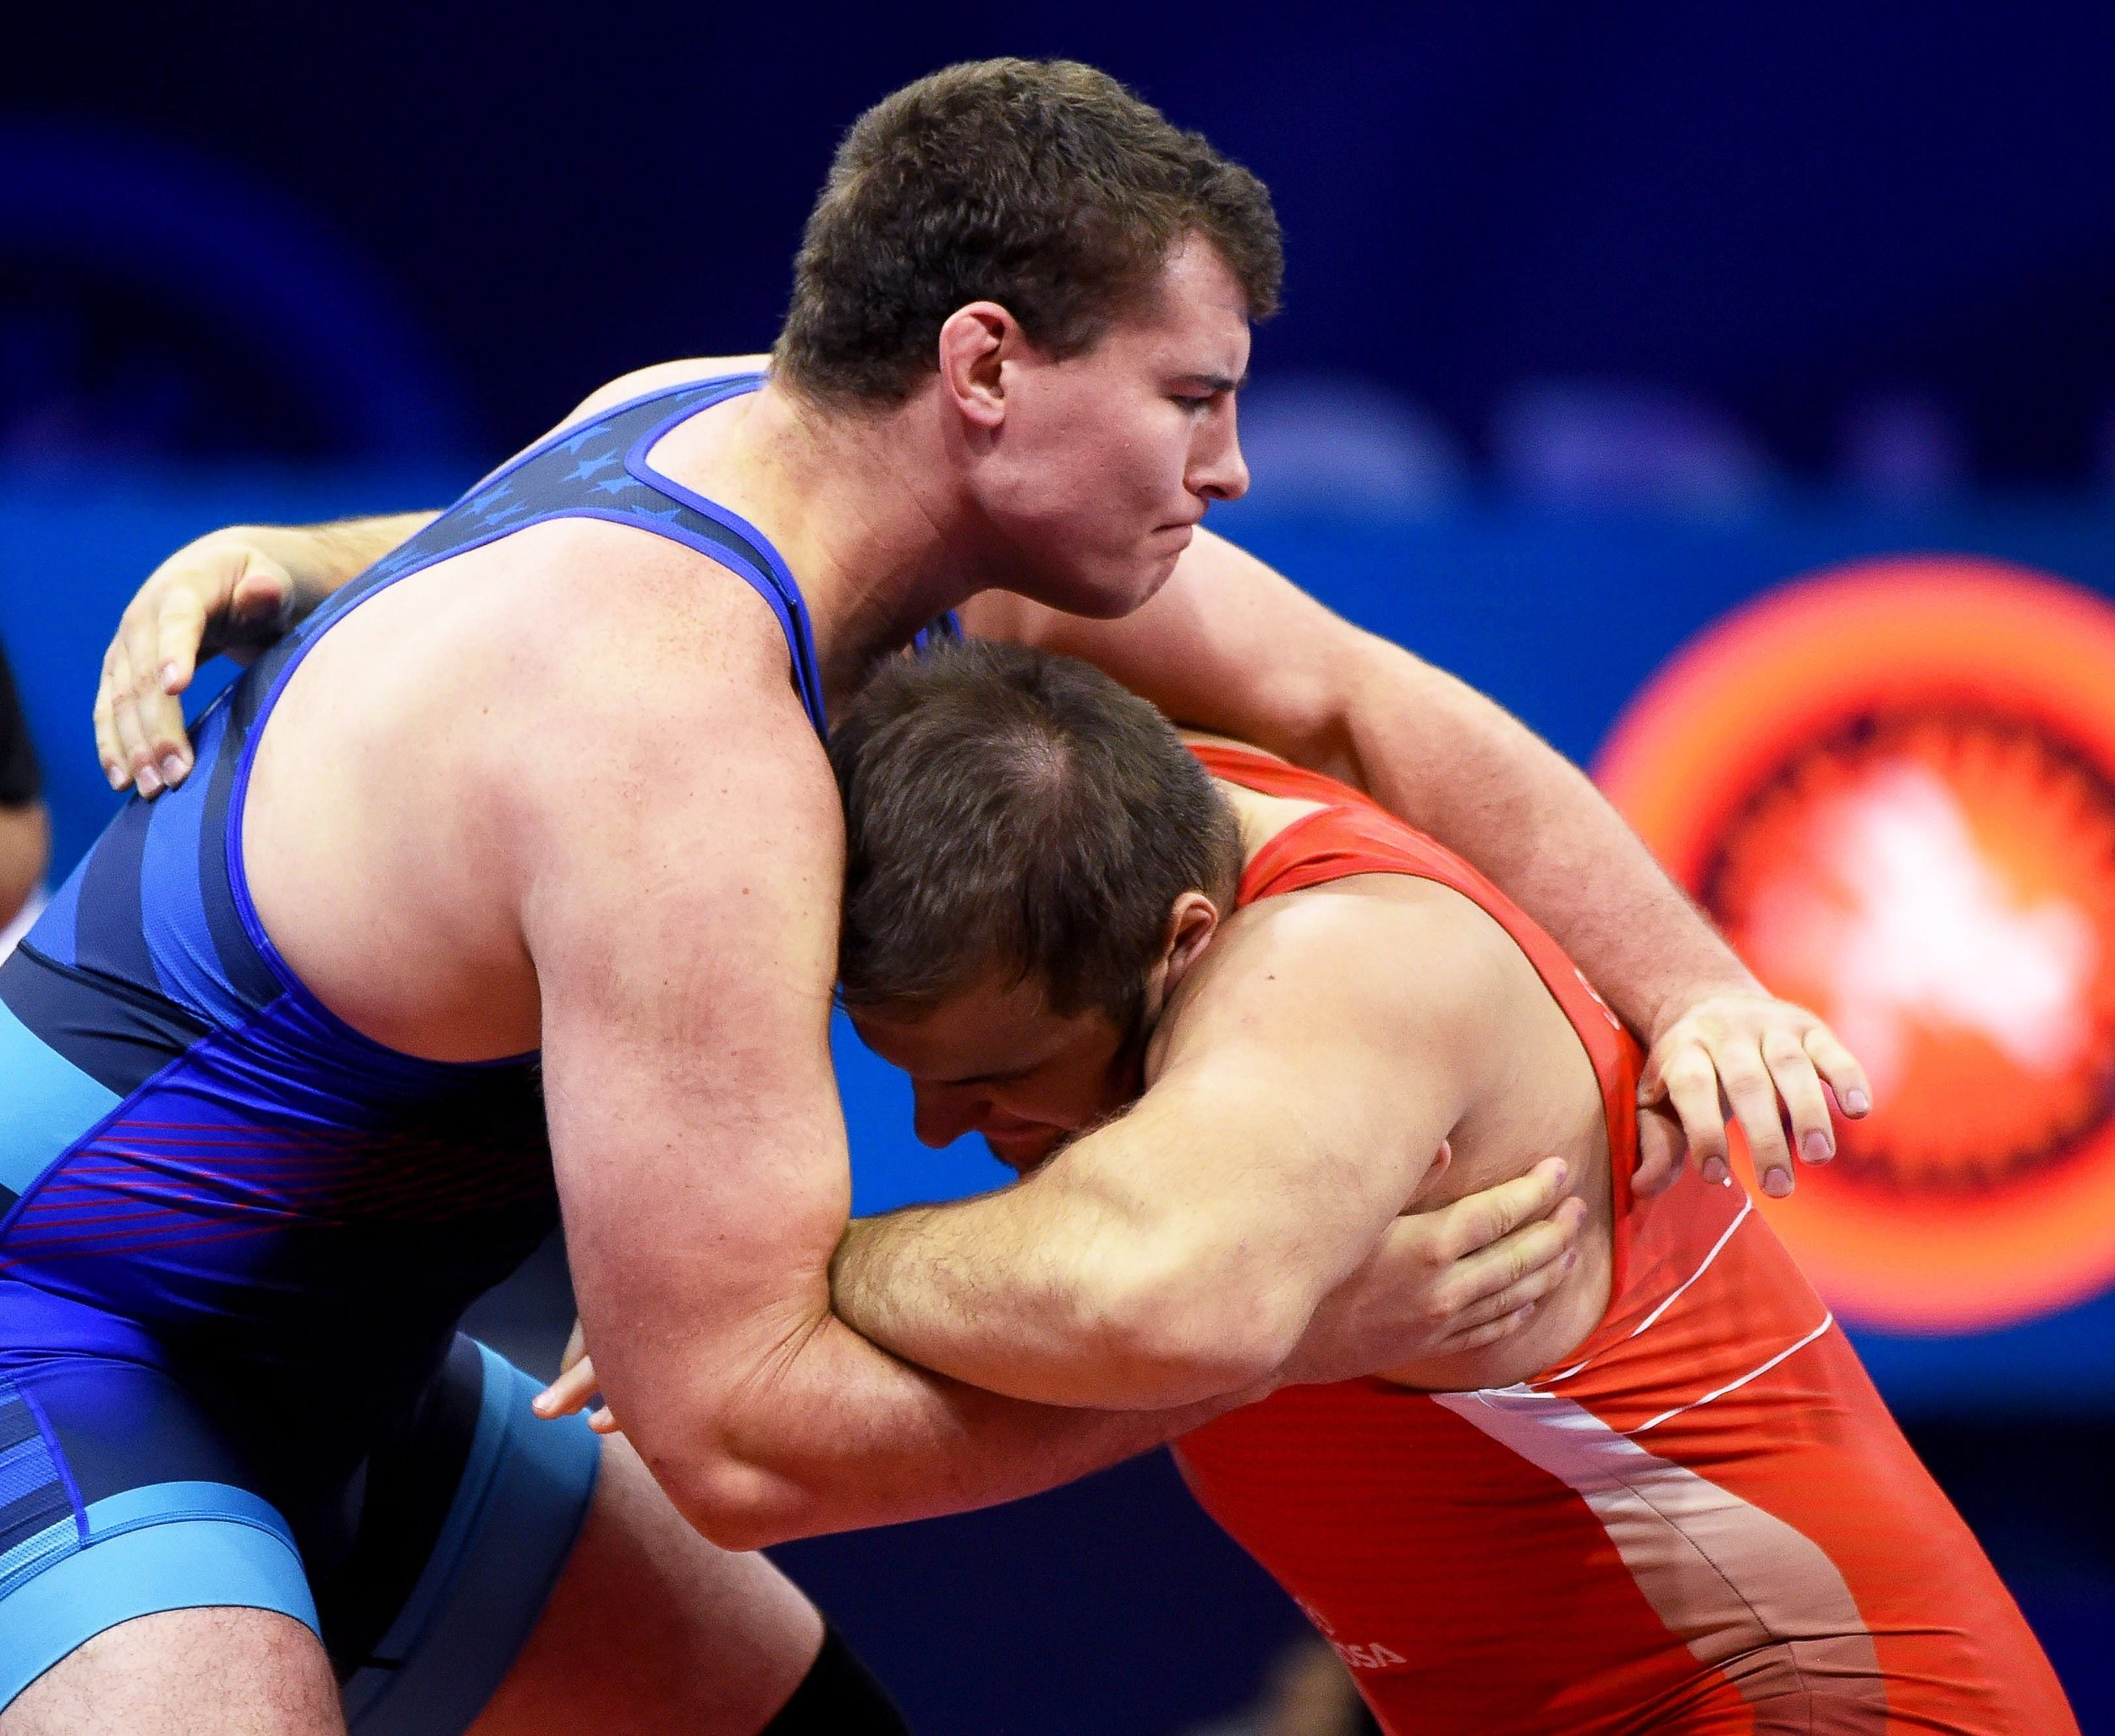 Adam Coon won a silver medal for Team USA this past weekend in Budapest.